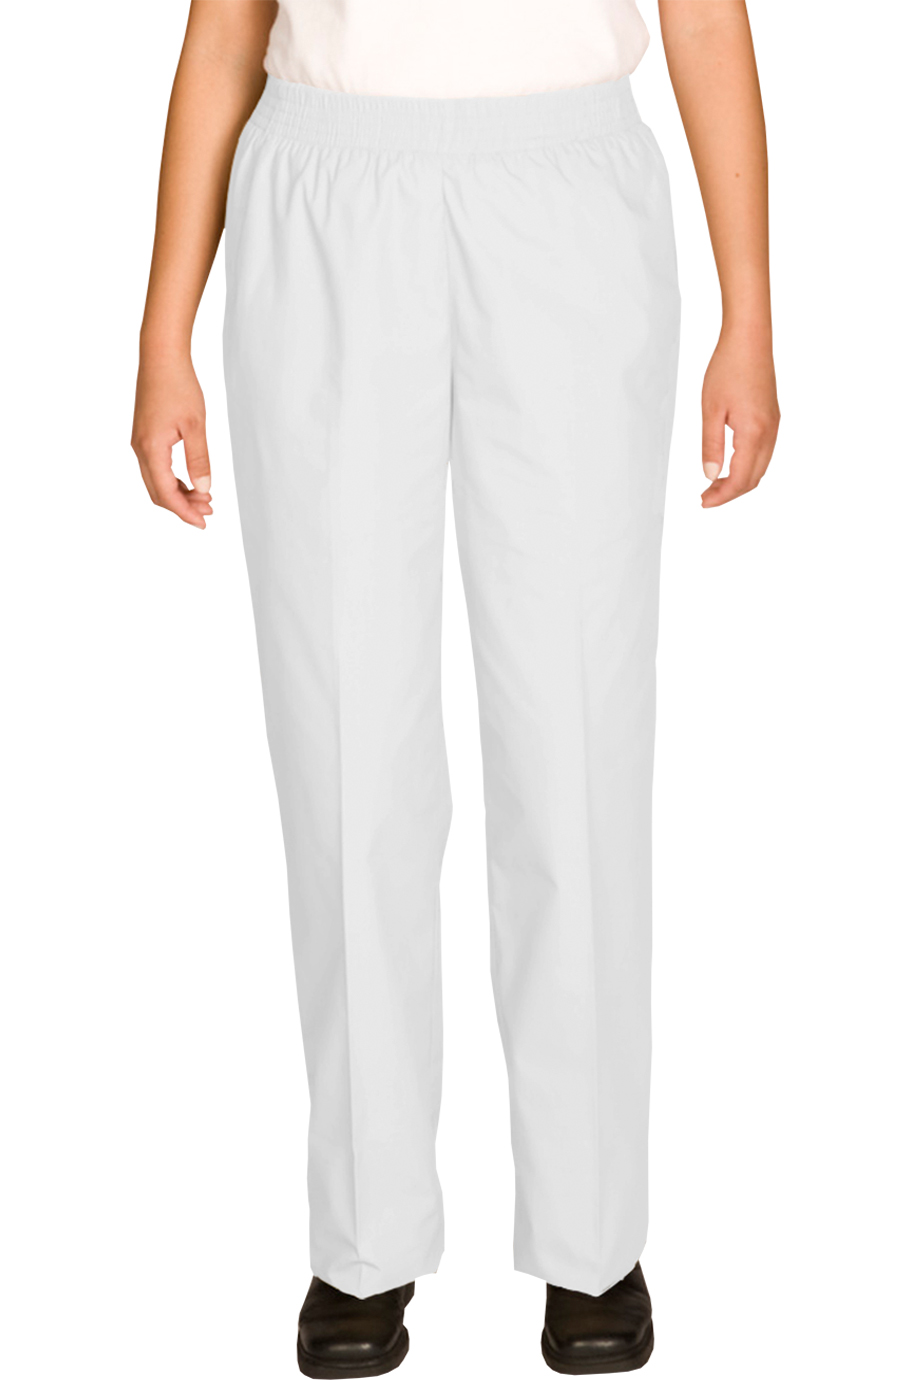 Women's Poly-Cotton Pull-On-Pant 8886